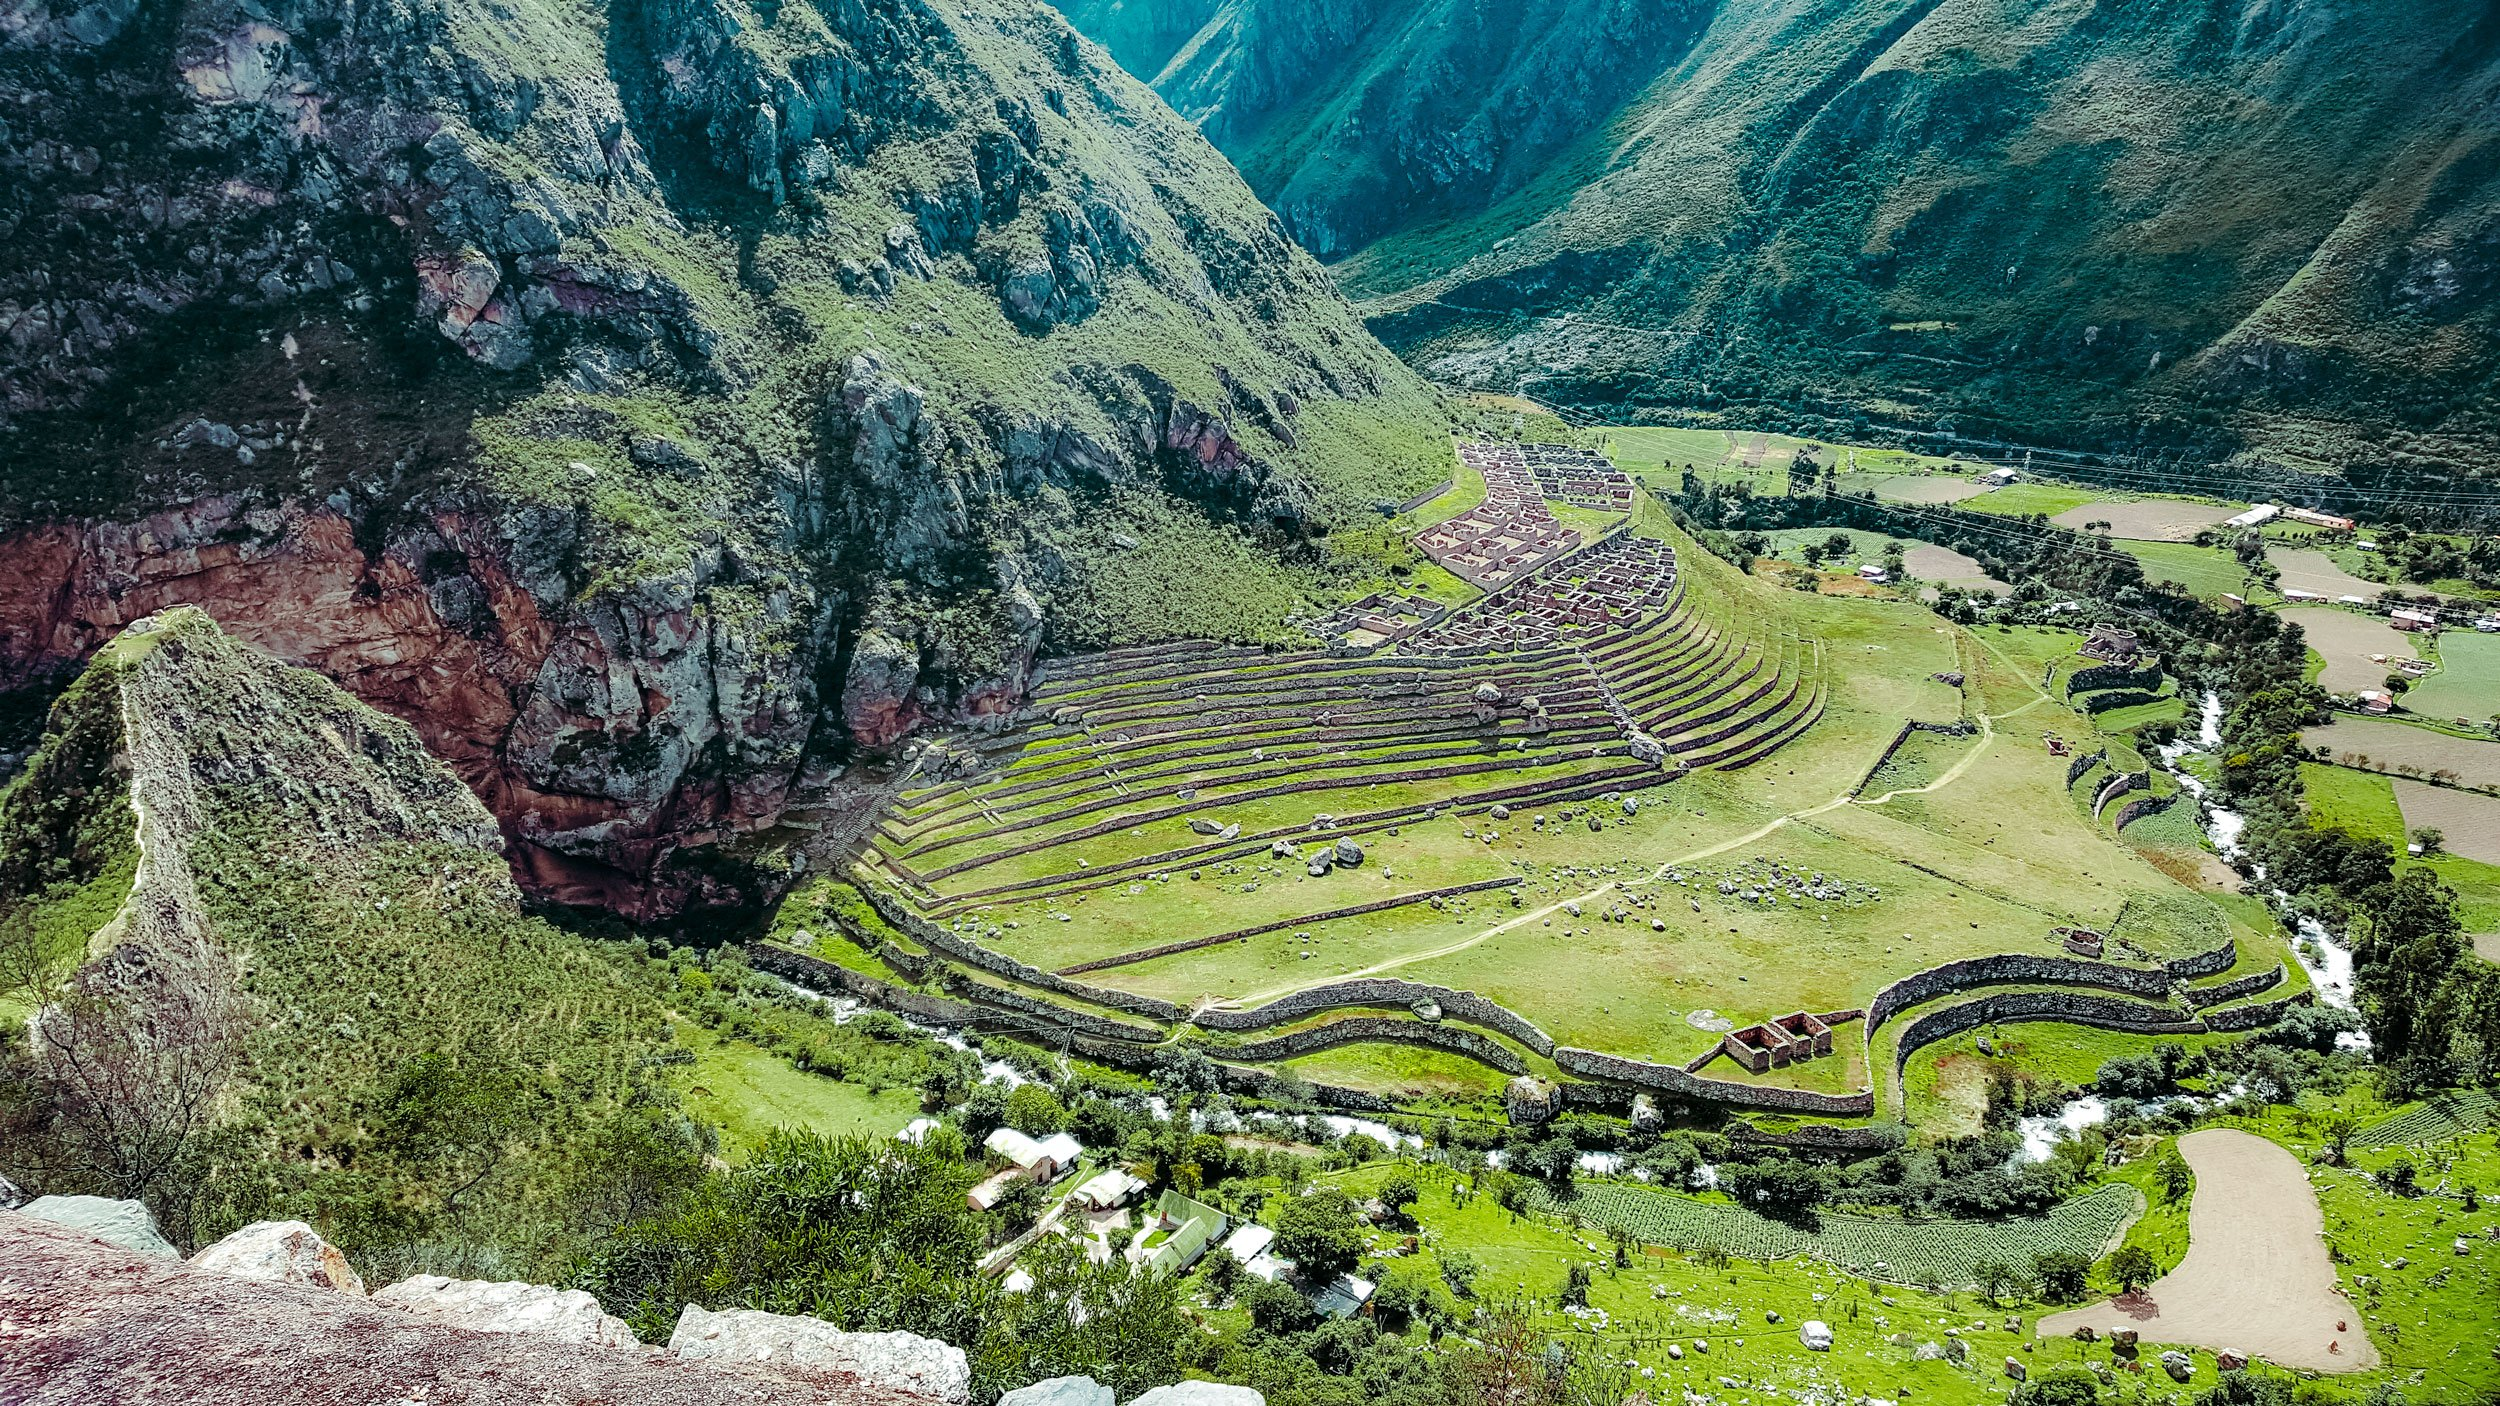 Llactapata ruins on the Inca Trail | How to Hike the Inca Trail as a Solo Female Traveler